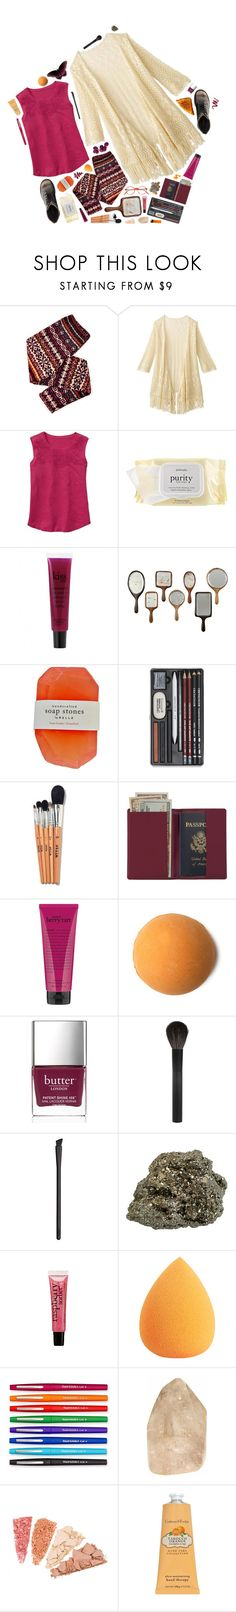 """""""fall berries during summer sunshine"""" by emmielu-01 ❤ liked on Polyvore featuring philosophy, Royce Leather, Butter London, Giorgio Armani, NARS Cosmetics, Paper Mate and Crabtree & Evelyn"""